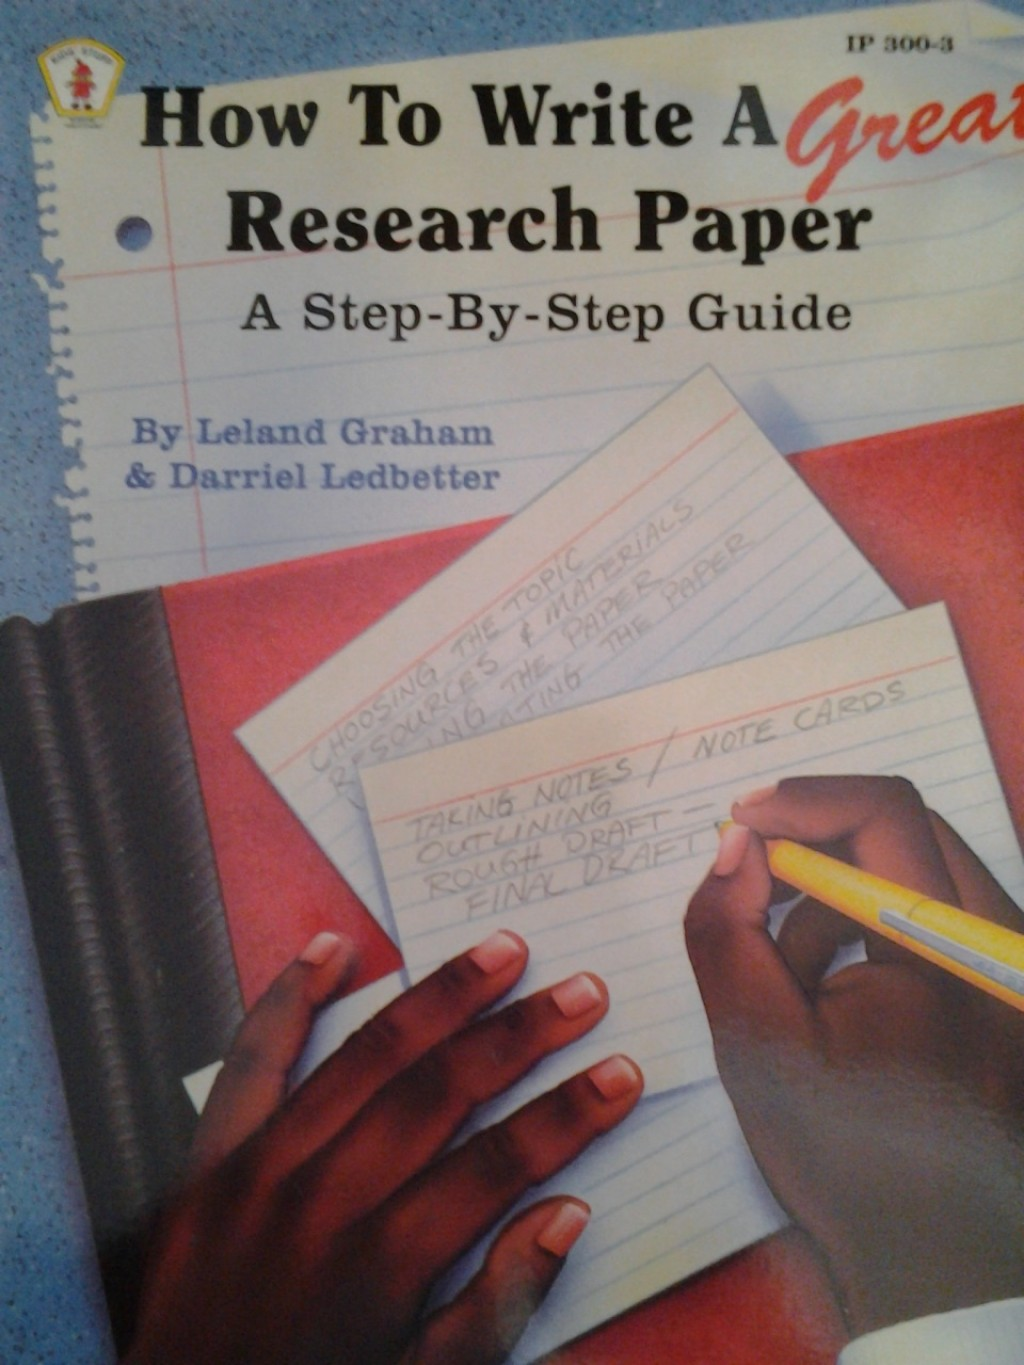 004 Img 20171008 144602 How To Write Great Research Paper Best A Book Good On Large